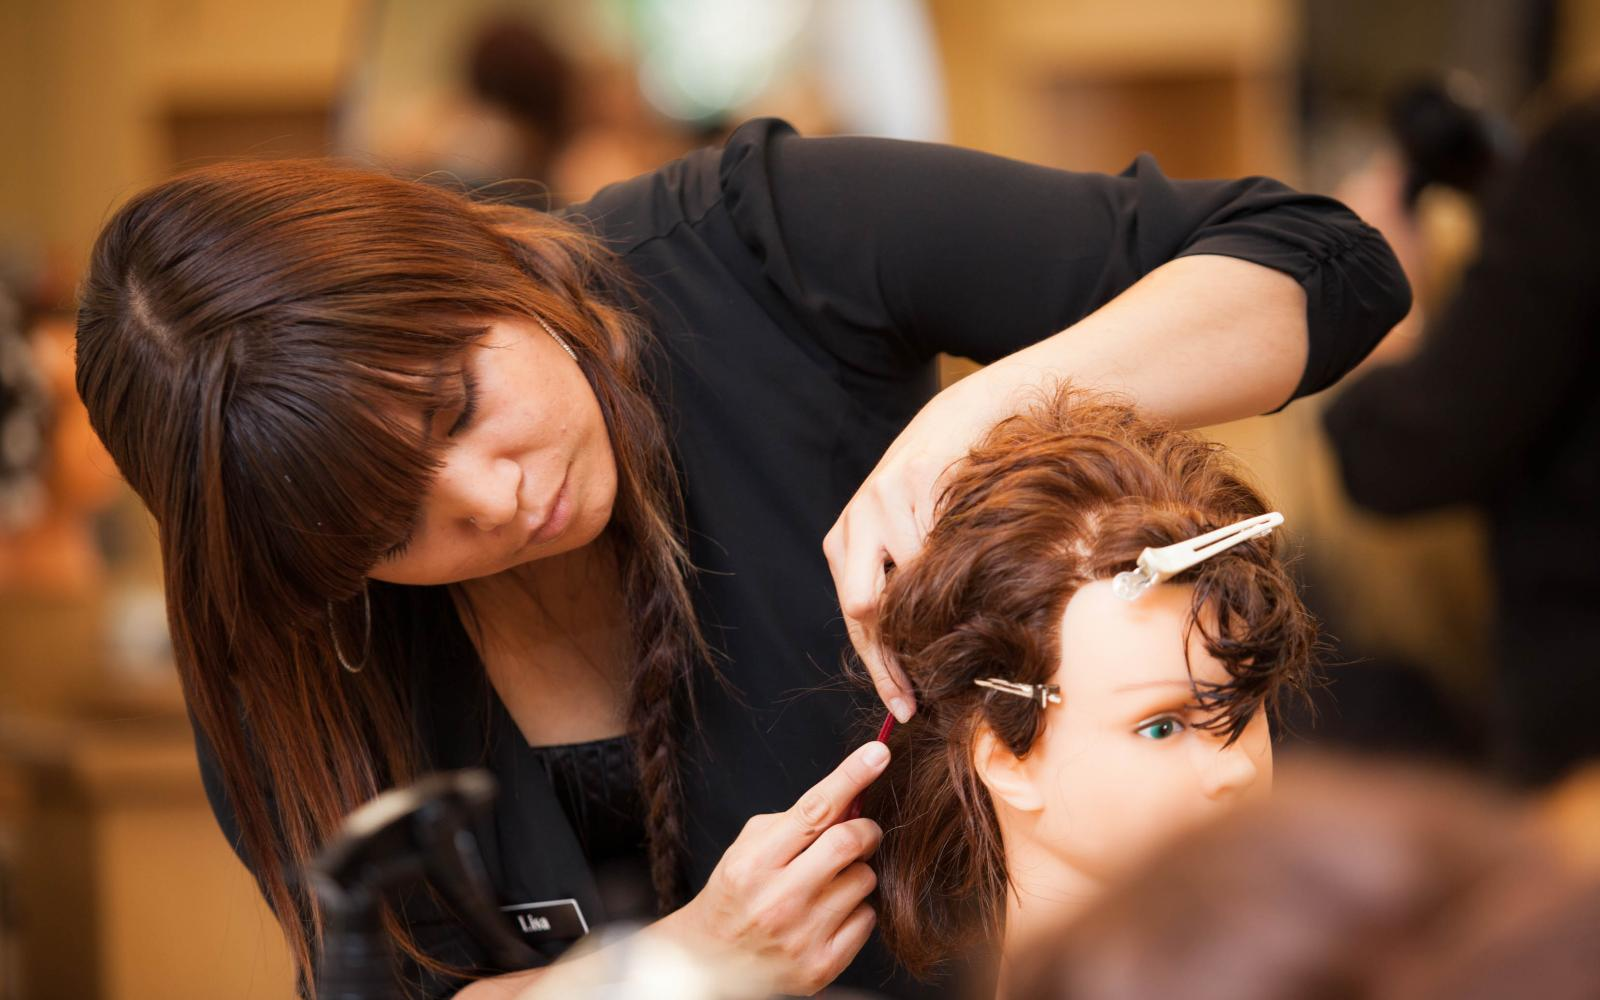 Hairstylist Foundation Certificate Program